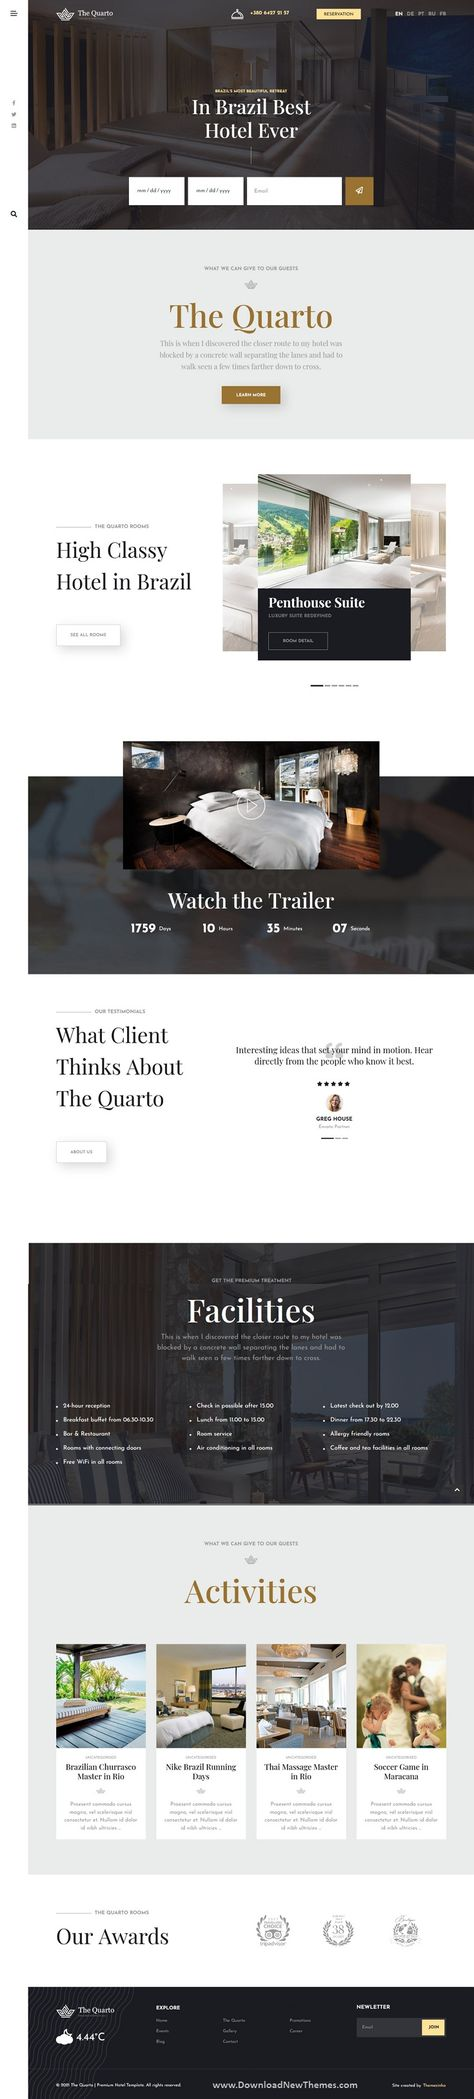 The Quarto Premium Hotel Joomla Template